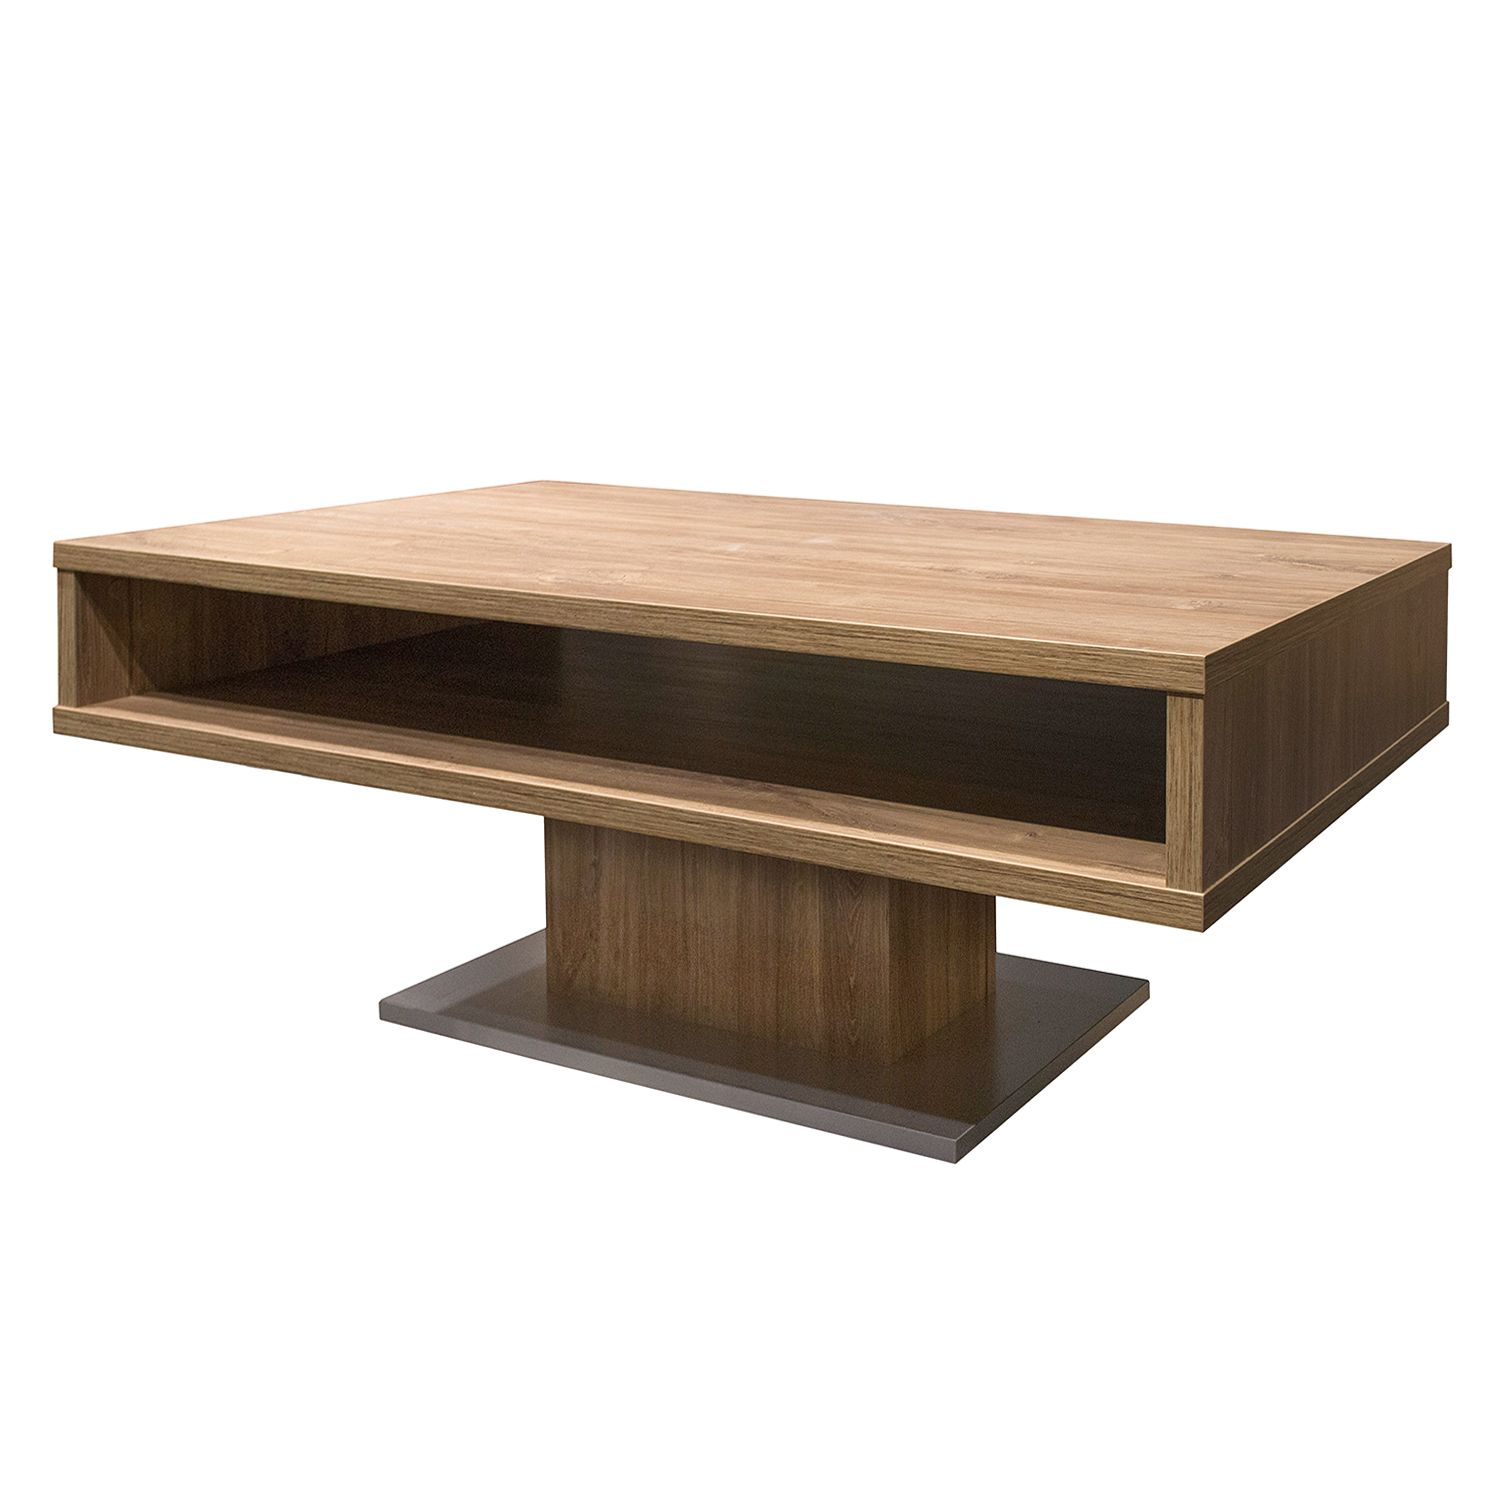 Table basse Malpas